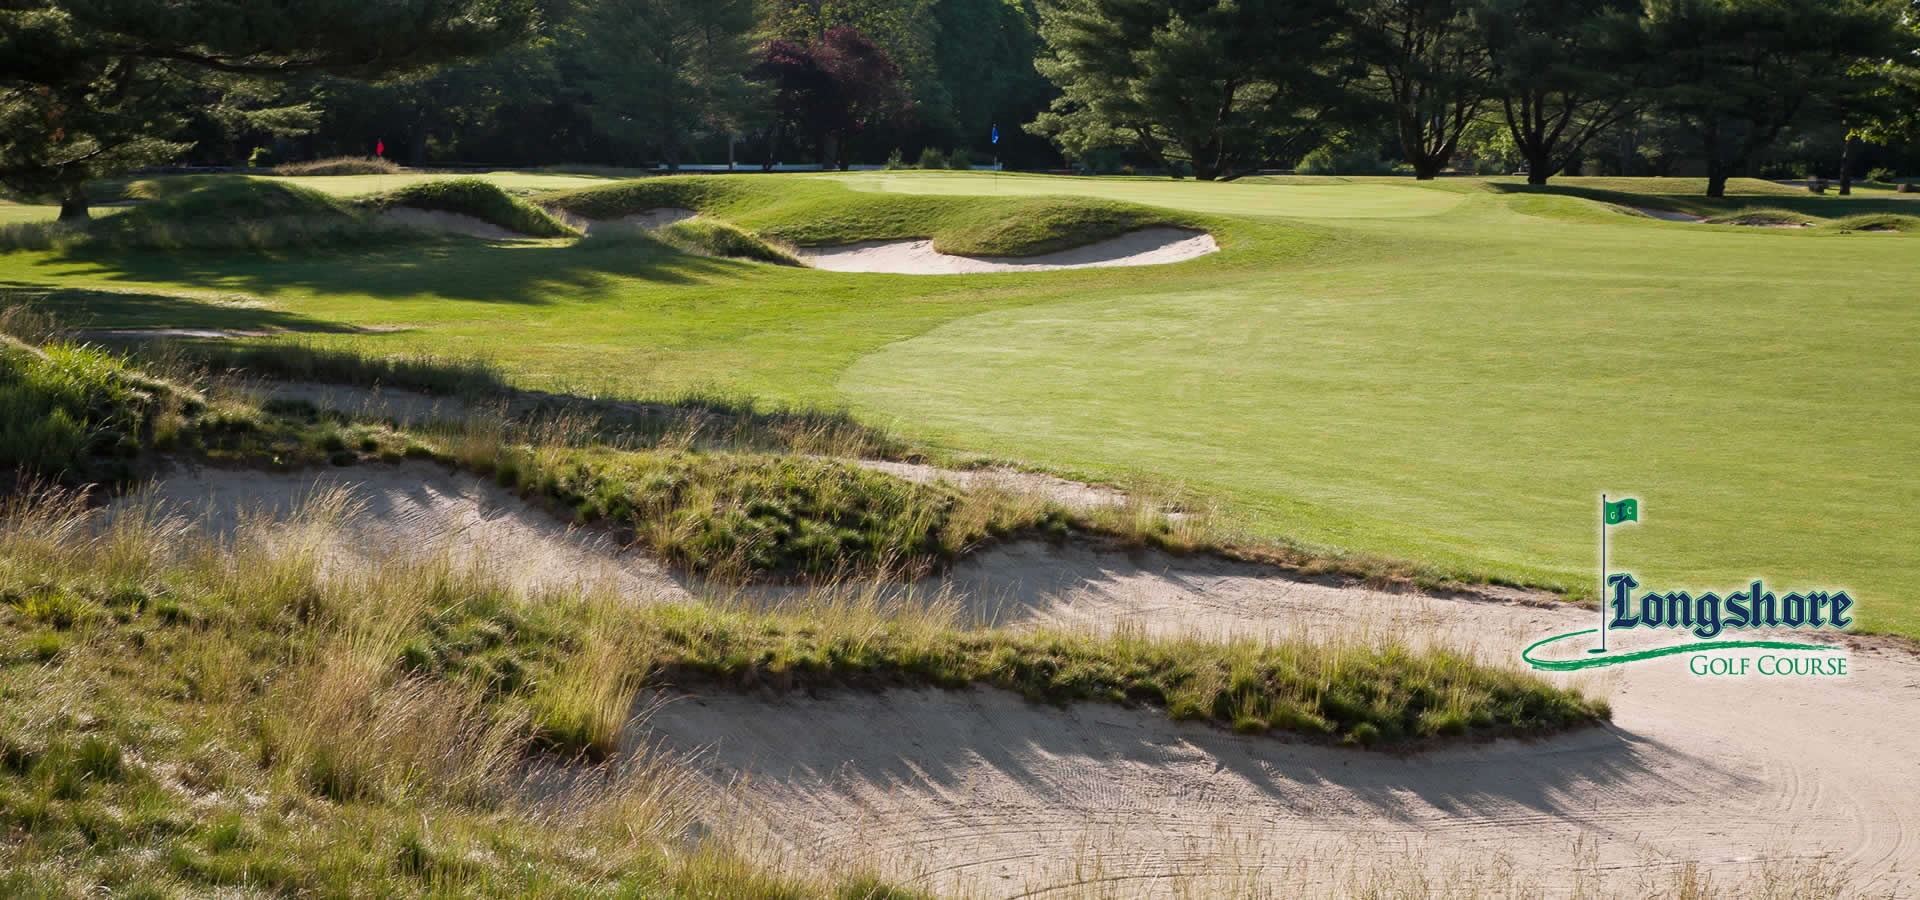 longshore golf course westport ct golf clubs header